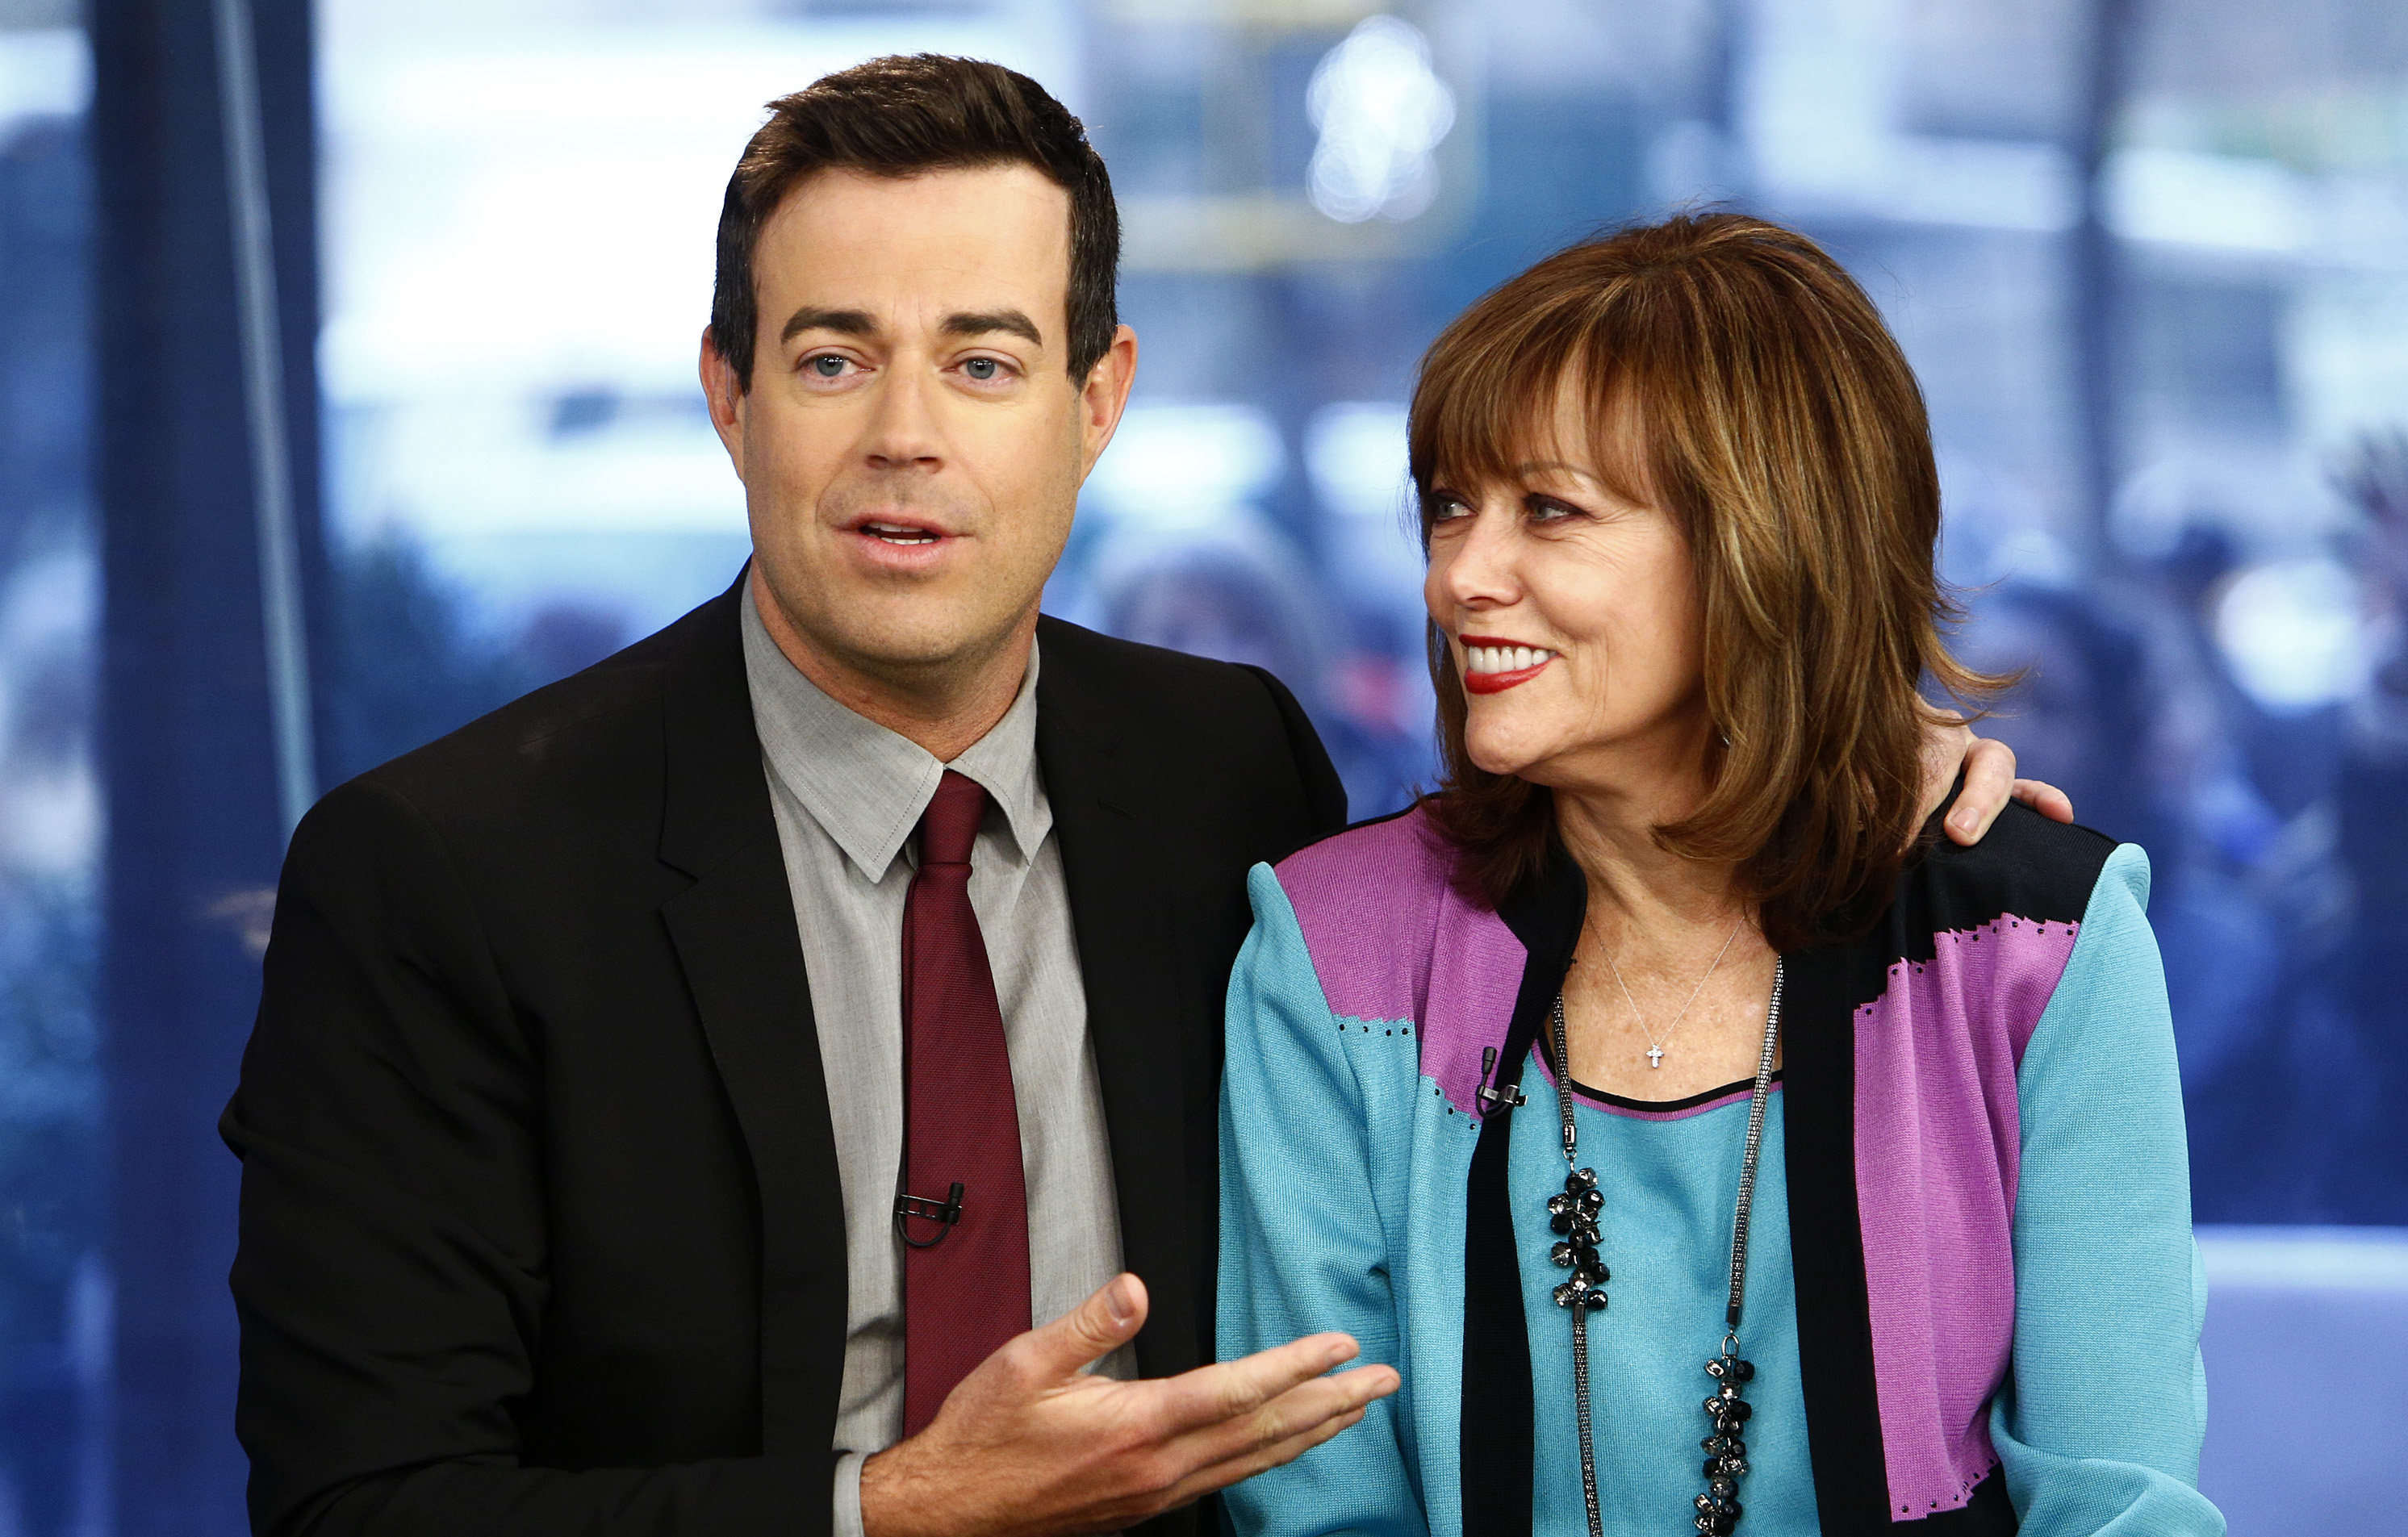 Carson Daly Never Saw His Mother's Fatal Heart Attack Coming: 'The Hurt Was So Strong'